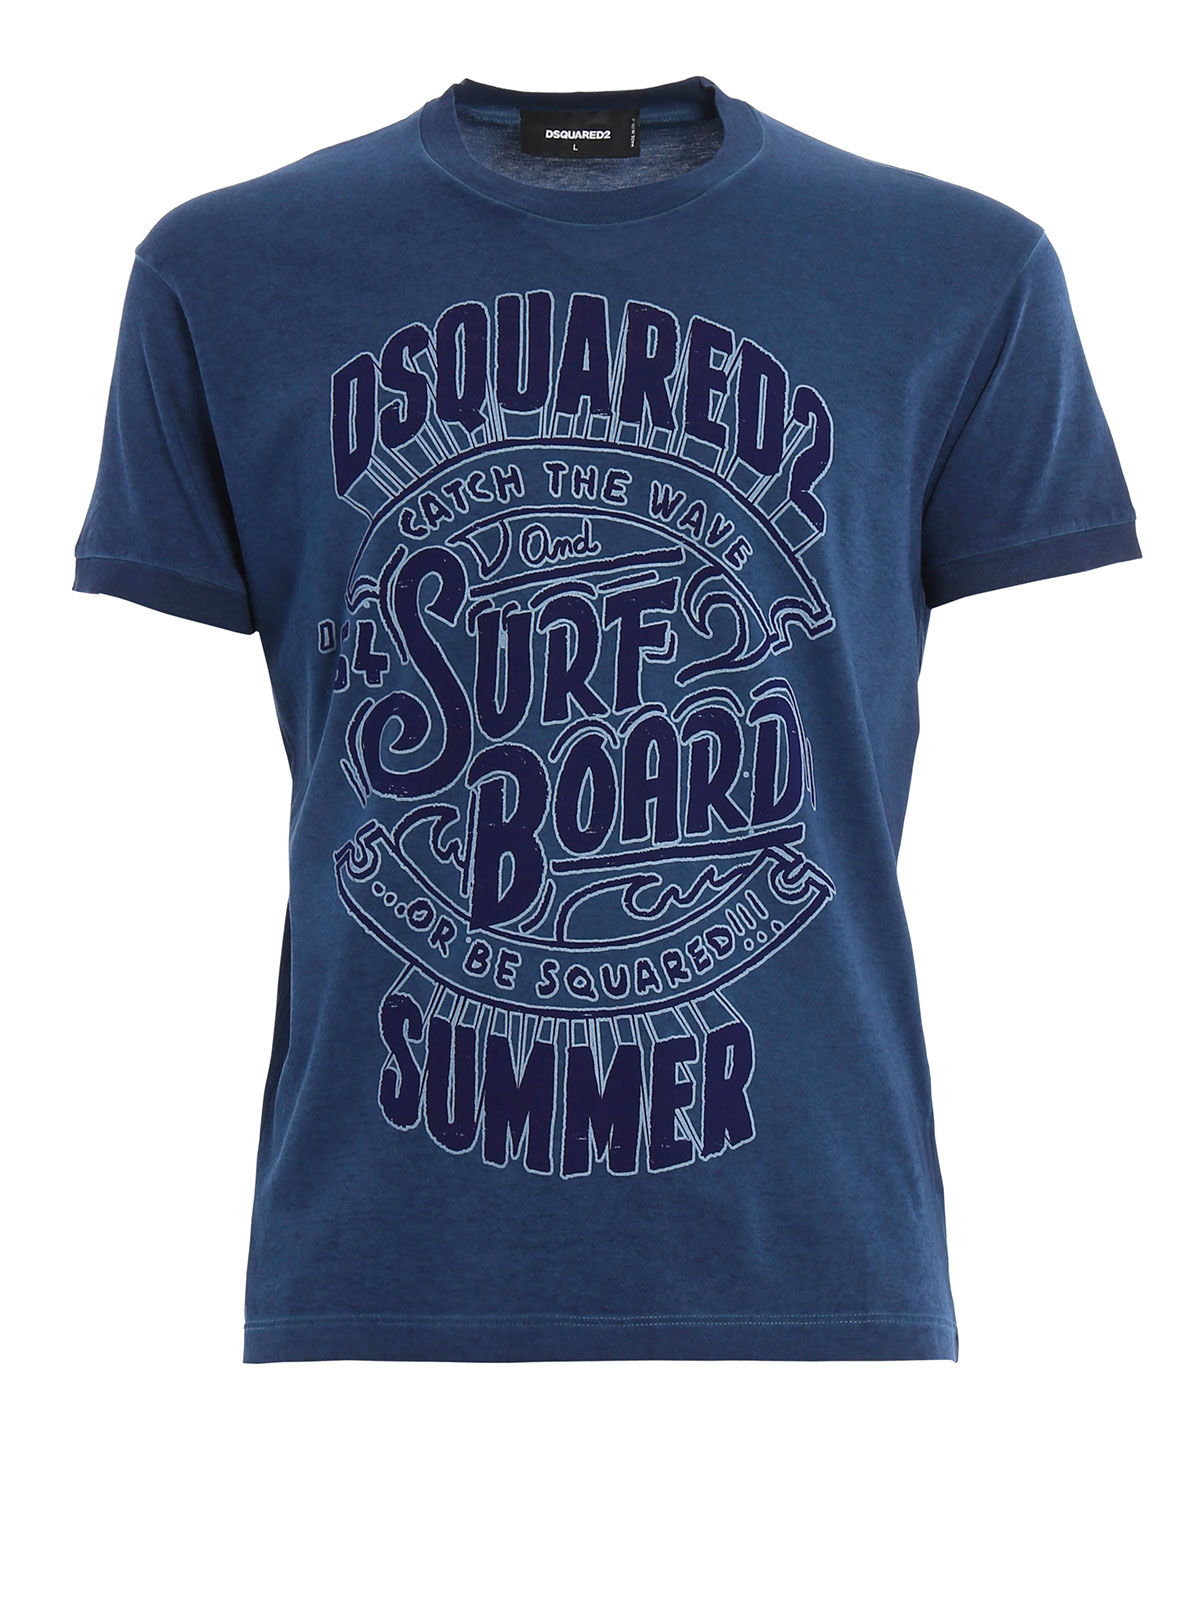 Vintage look printed t shirt by dsquared2 t shirts ikrix for Vintage t shirt printing